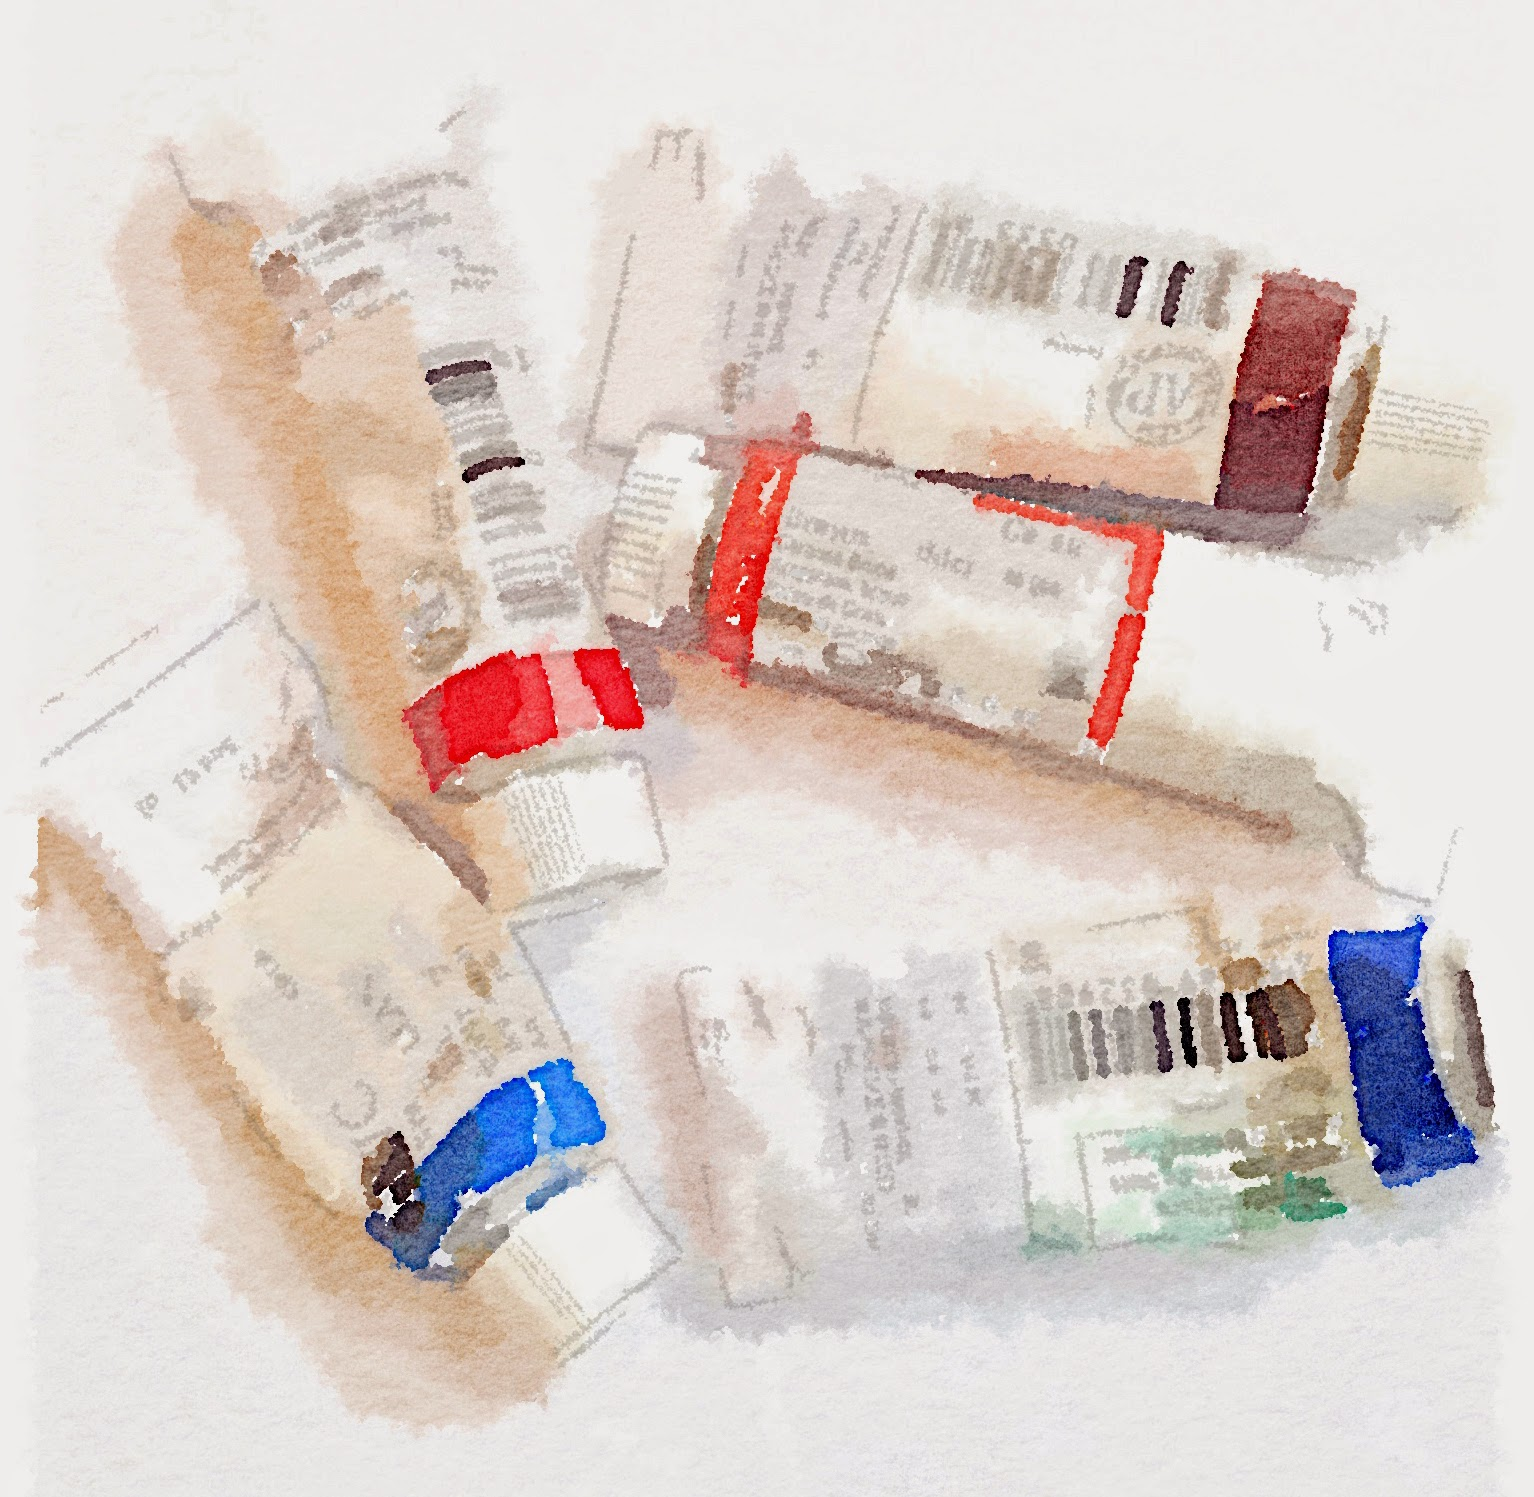 learn watercolor techniques by schulmanart on theinspirationplace.net